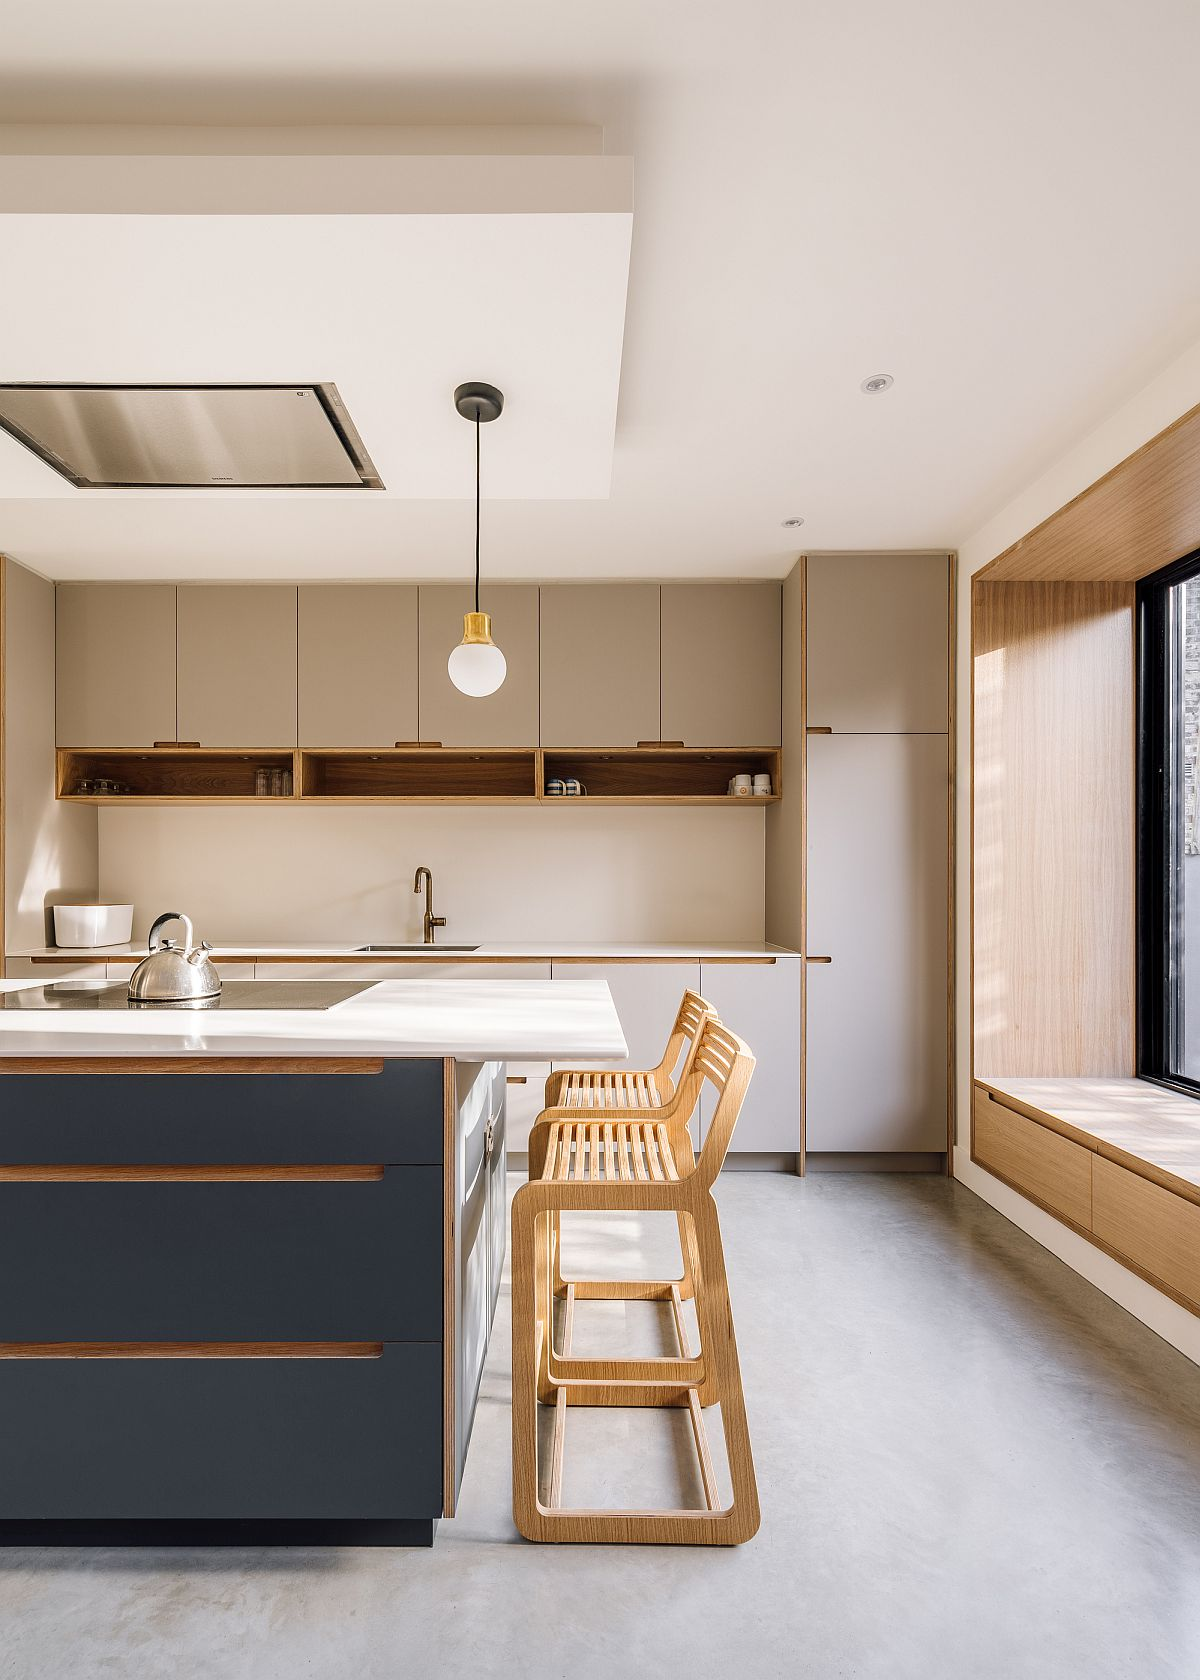 Fabulous bluish-gray central island of the spacious new kitchen with roof light